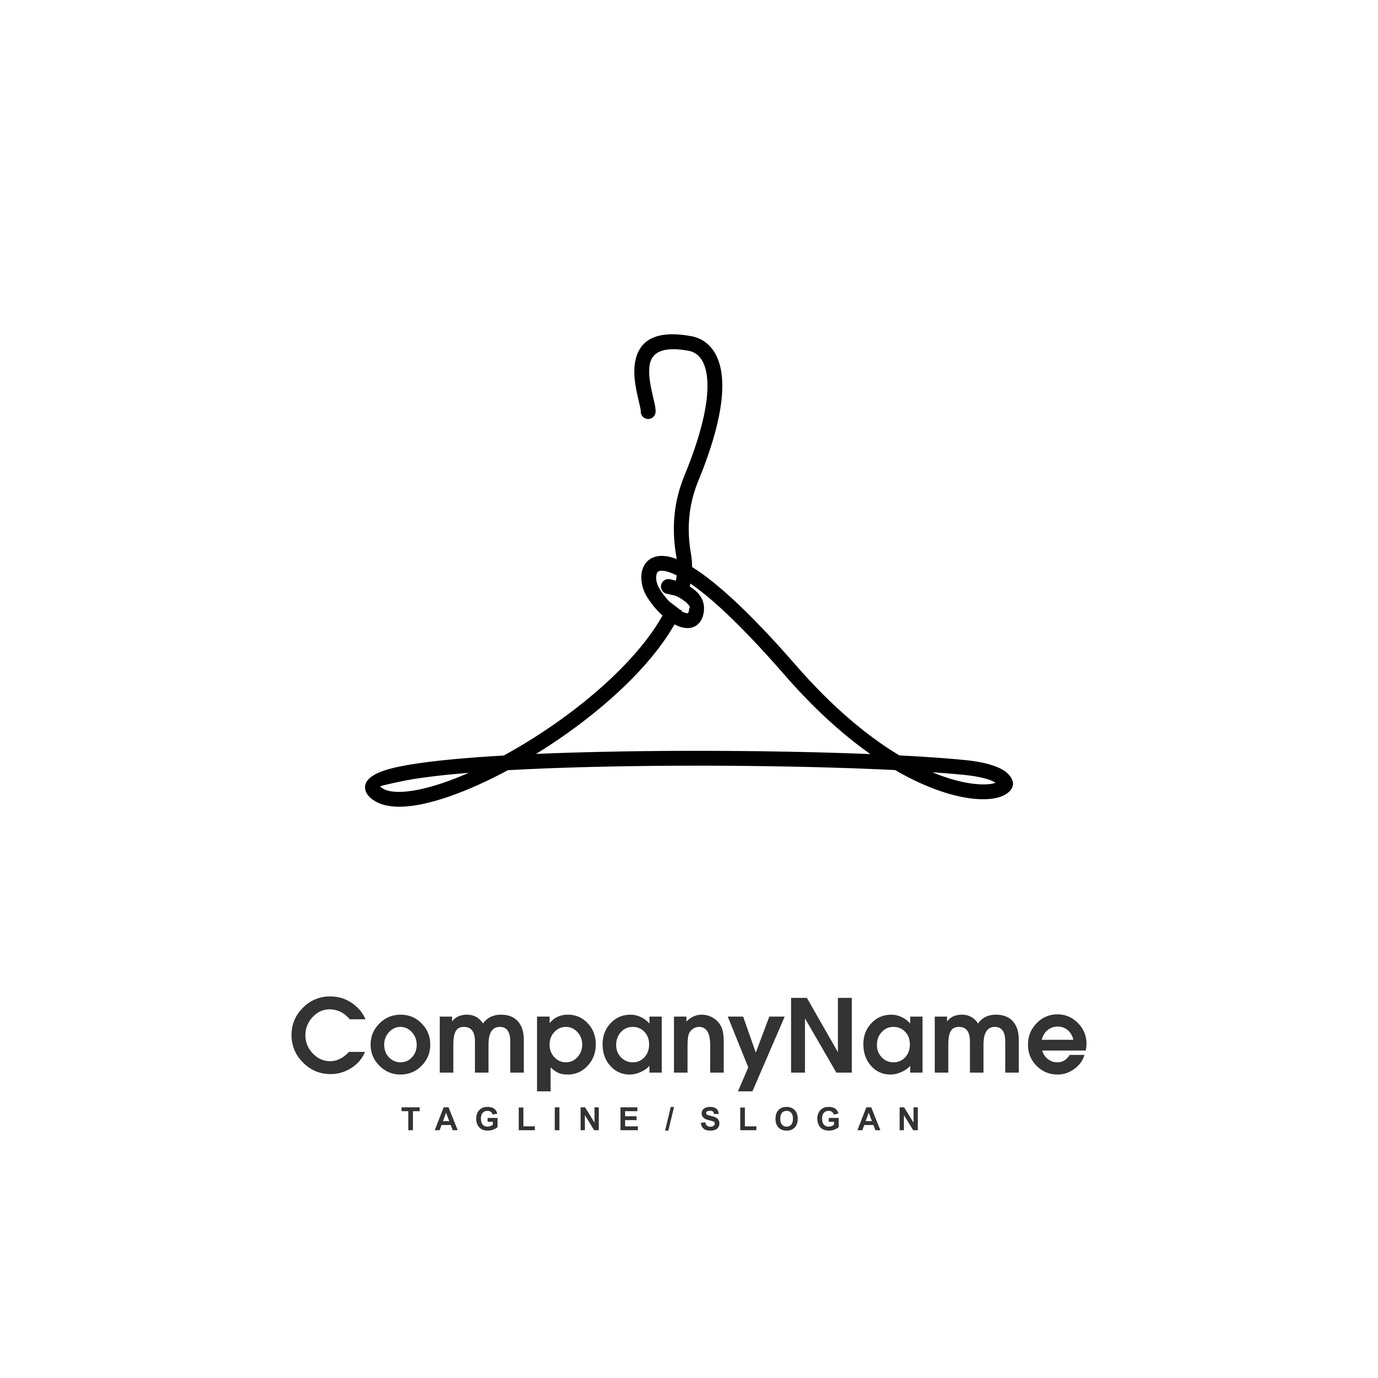 cdd9f977917c7a How to Create a Fashion Logo for Clothing Lines • Online Logo ...